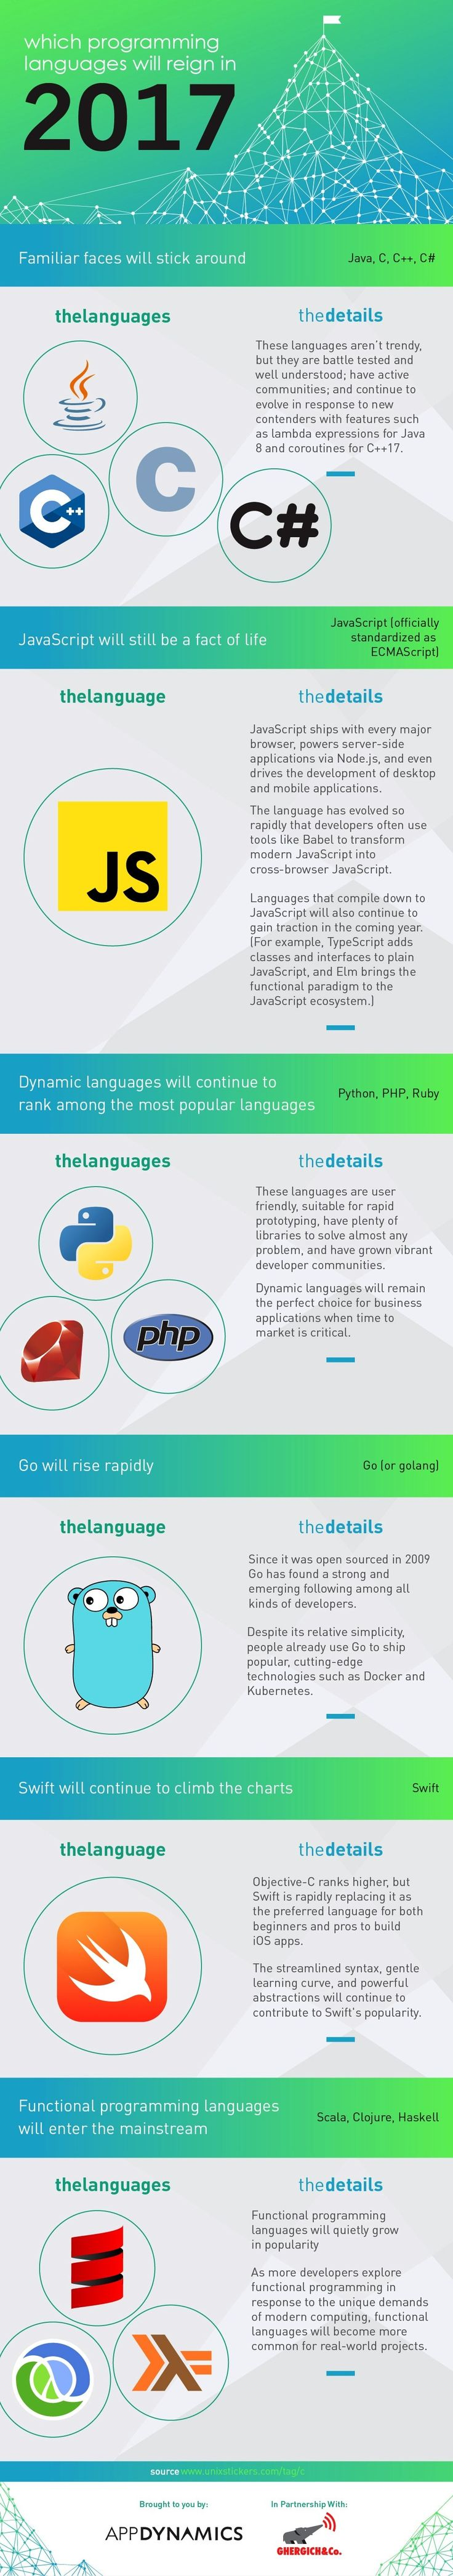 Which Programming Languages Will Reign In 2017 #Infographic